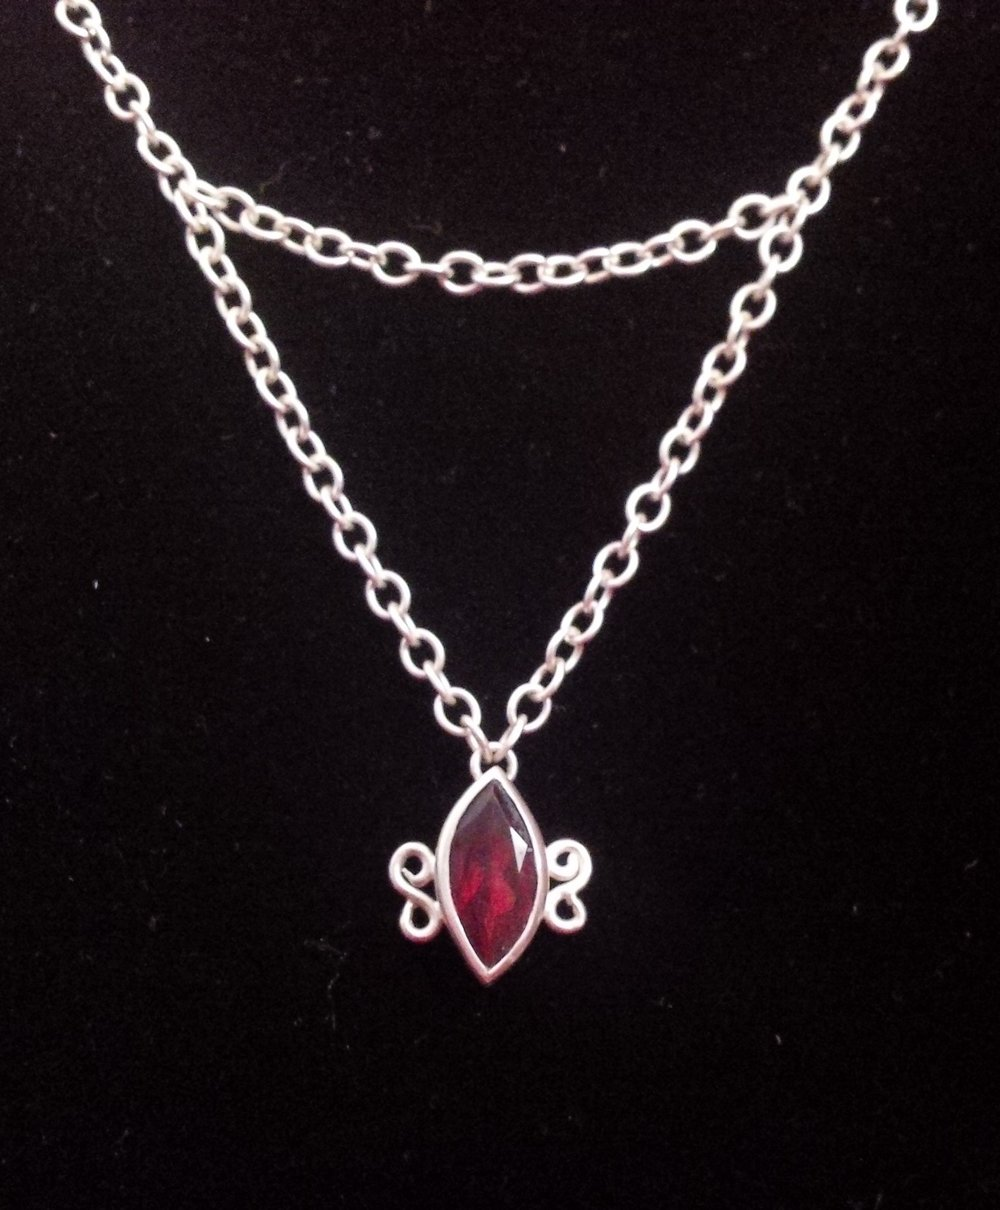 Silver necklace with marquise cut garnet - SOLD